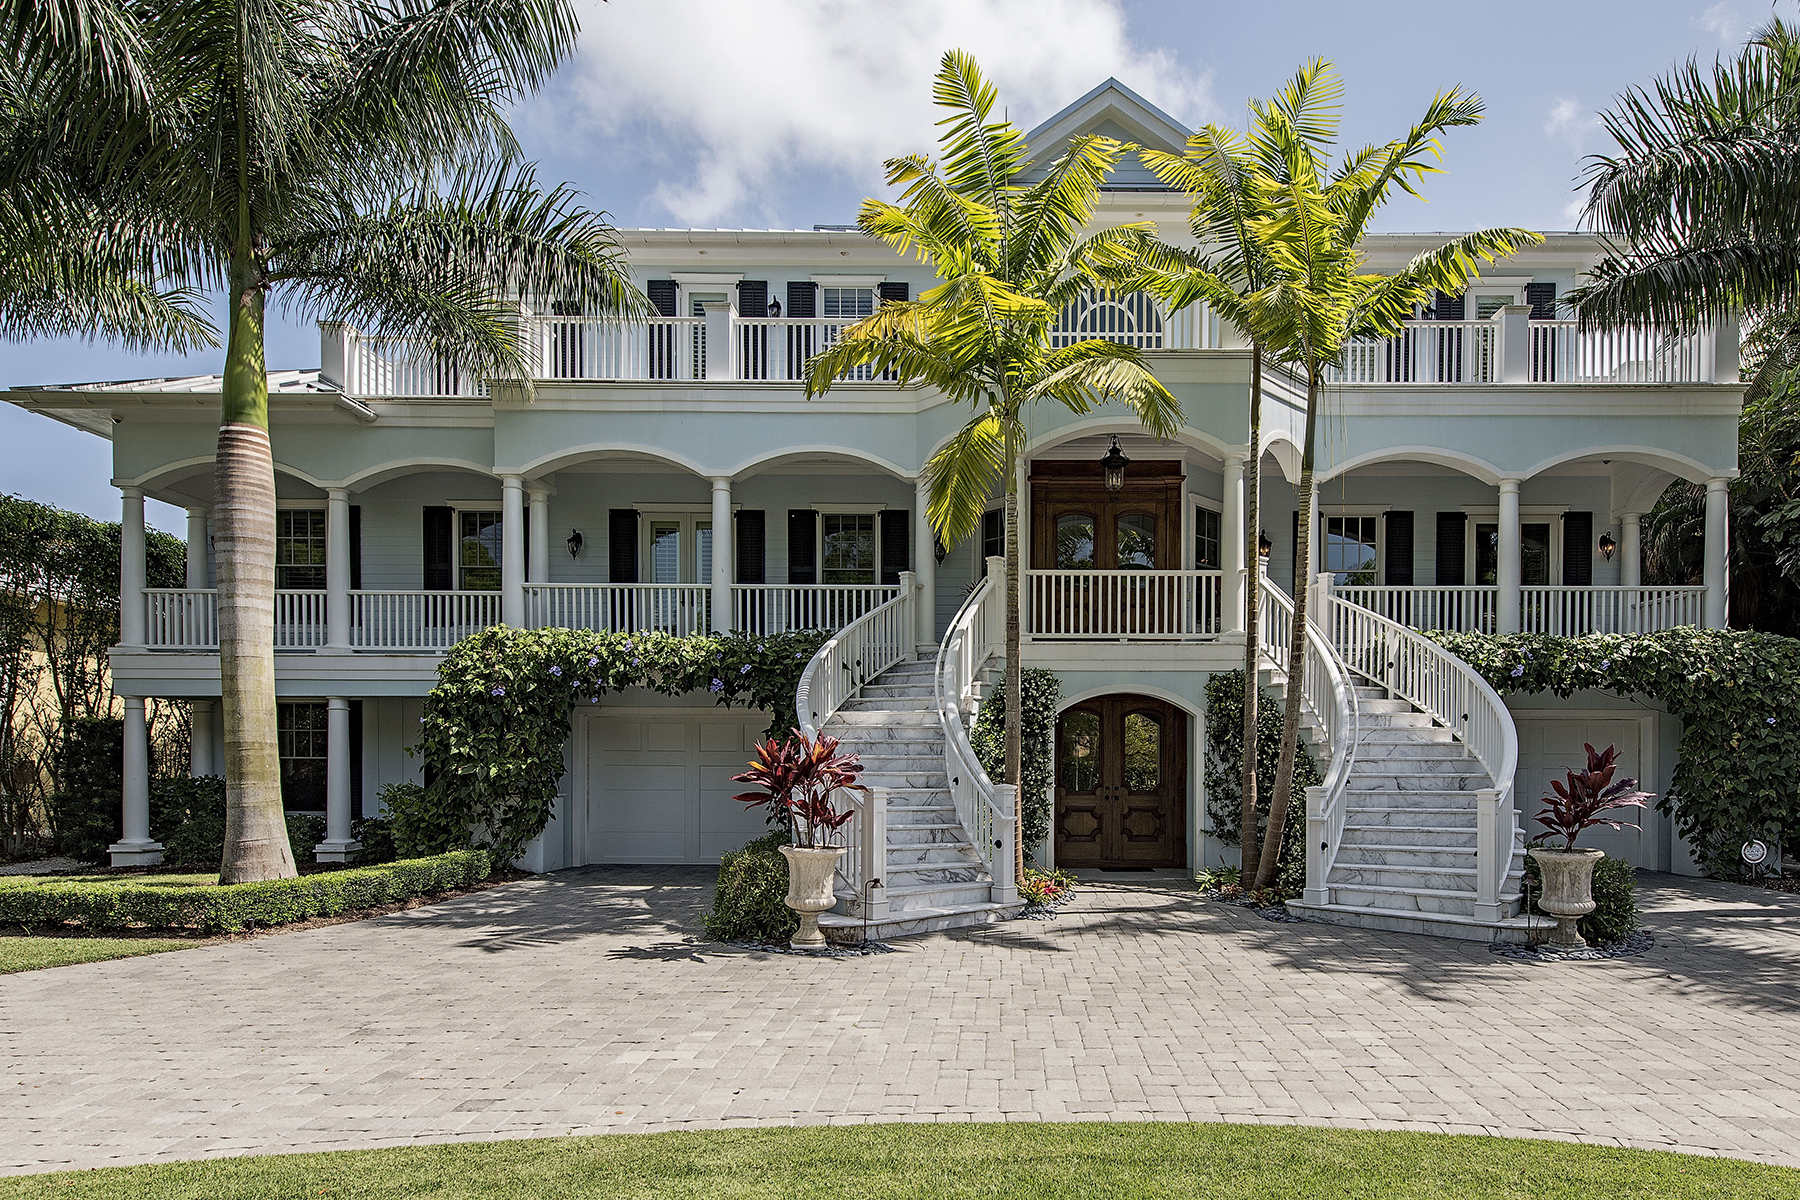 Single Family Home for Rent at OLD NAPLES 140 3rd Ave S, Naples, Florida 34102 United States